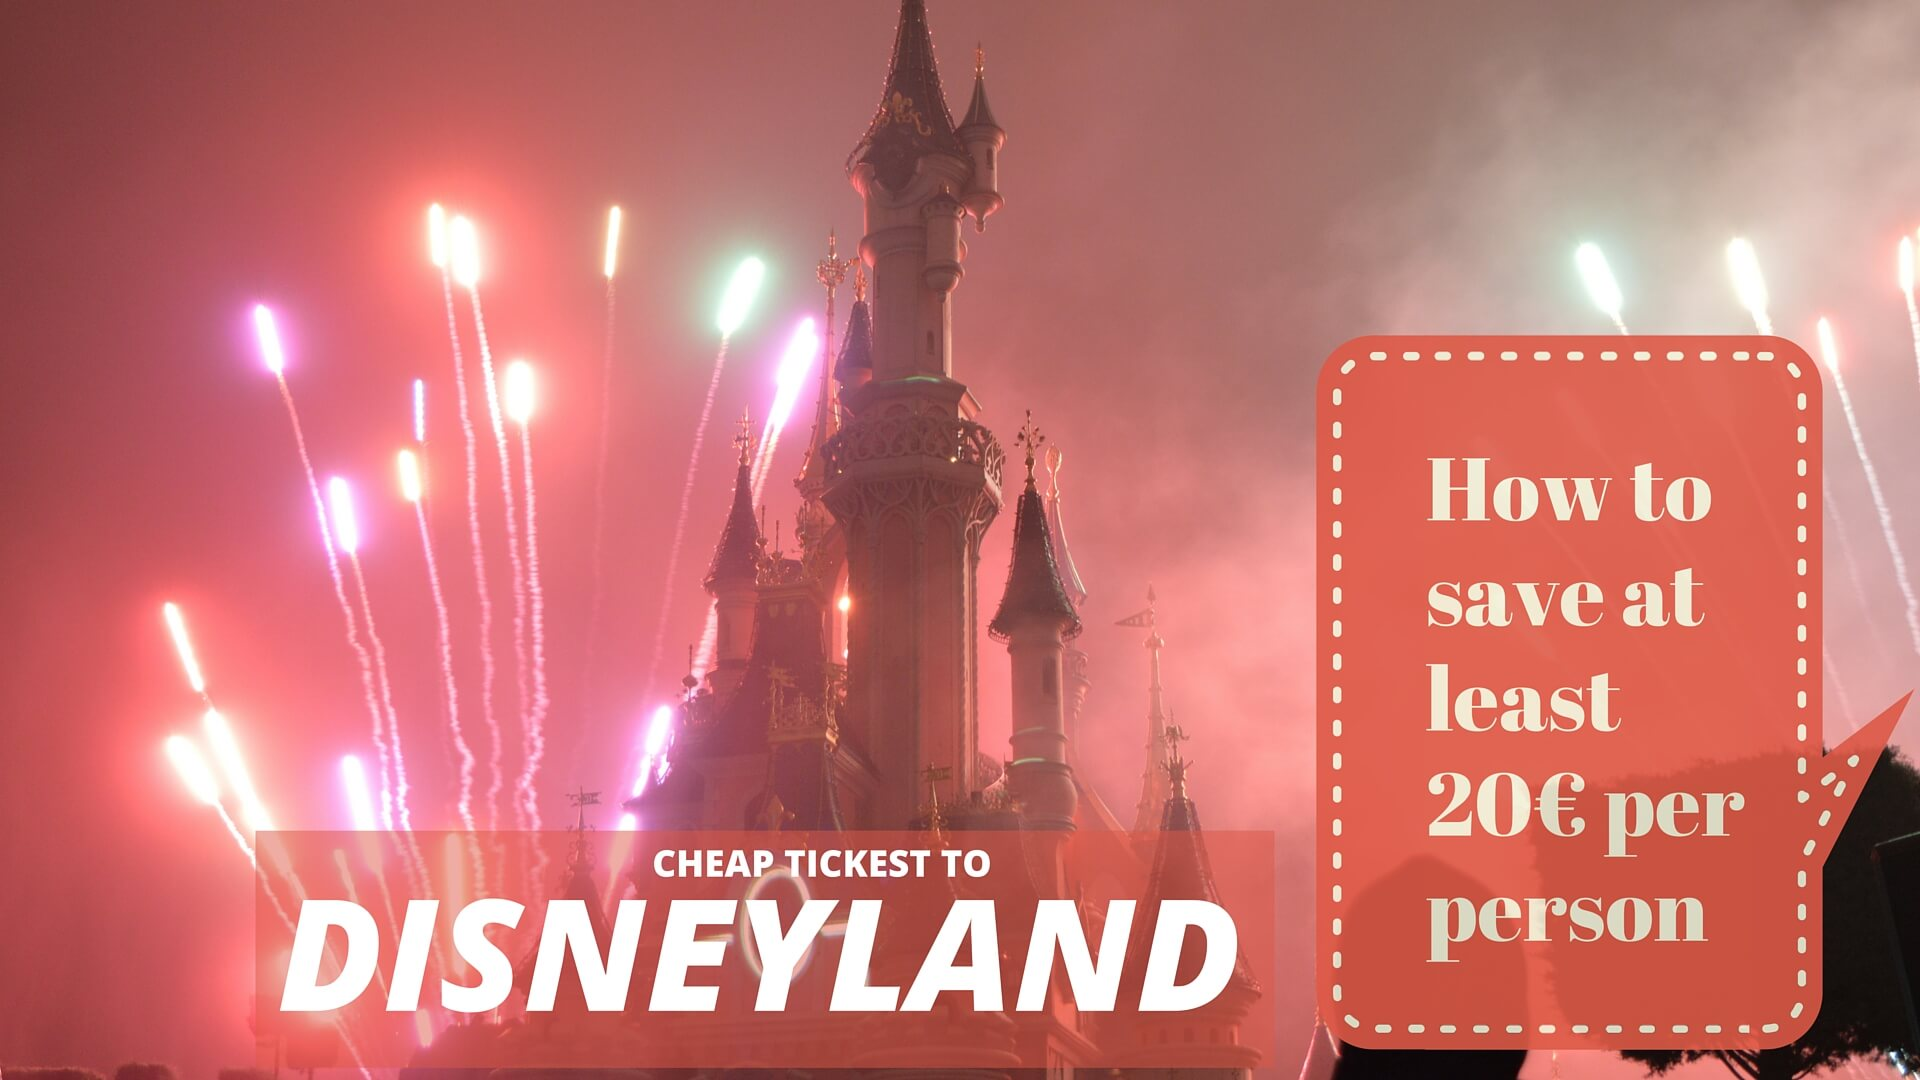 Cheap tickets to Disneyland, Paris - how to save at least 20€ per person